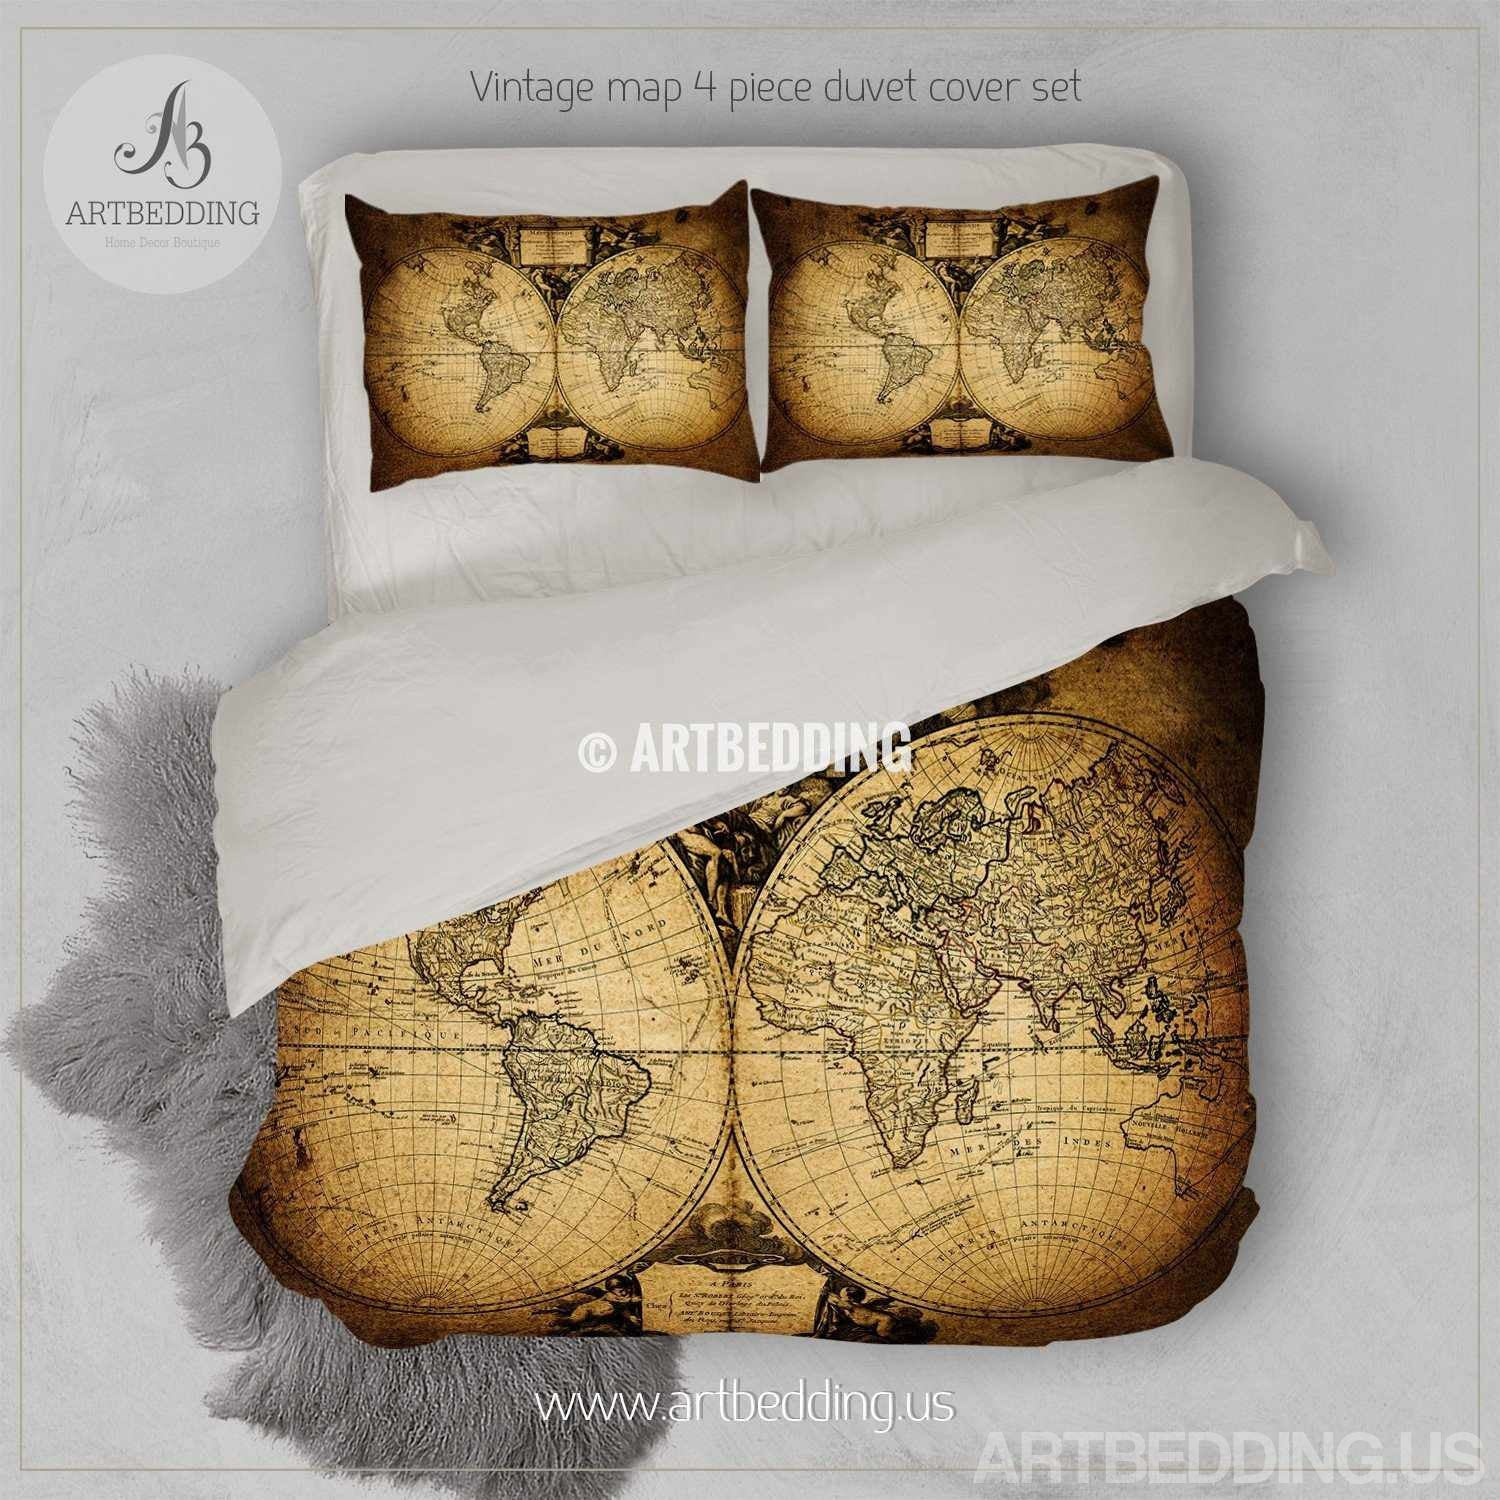 Vintage world map bedding antique map of the world 1752 duvet cover world 1752 duvet cover set steampunk vintage map bedding vintage old map duvet cover antique map queen king gumiabroncs Choice Image